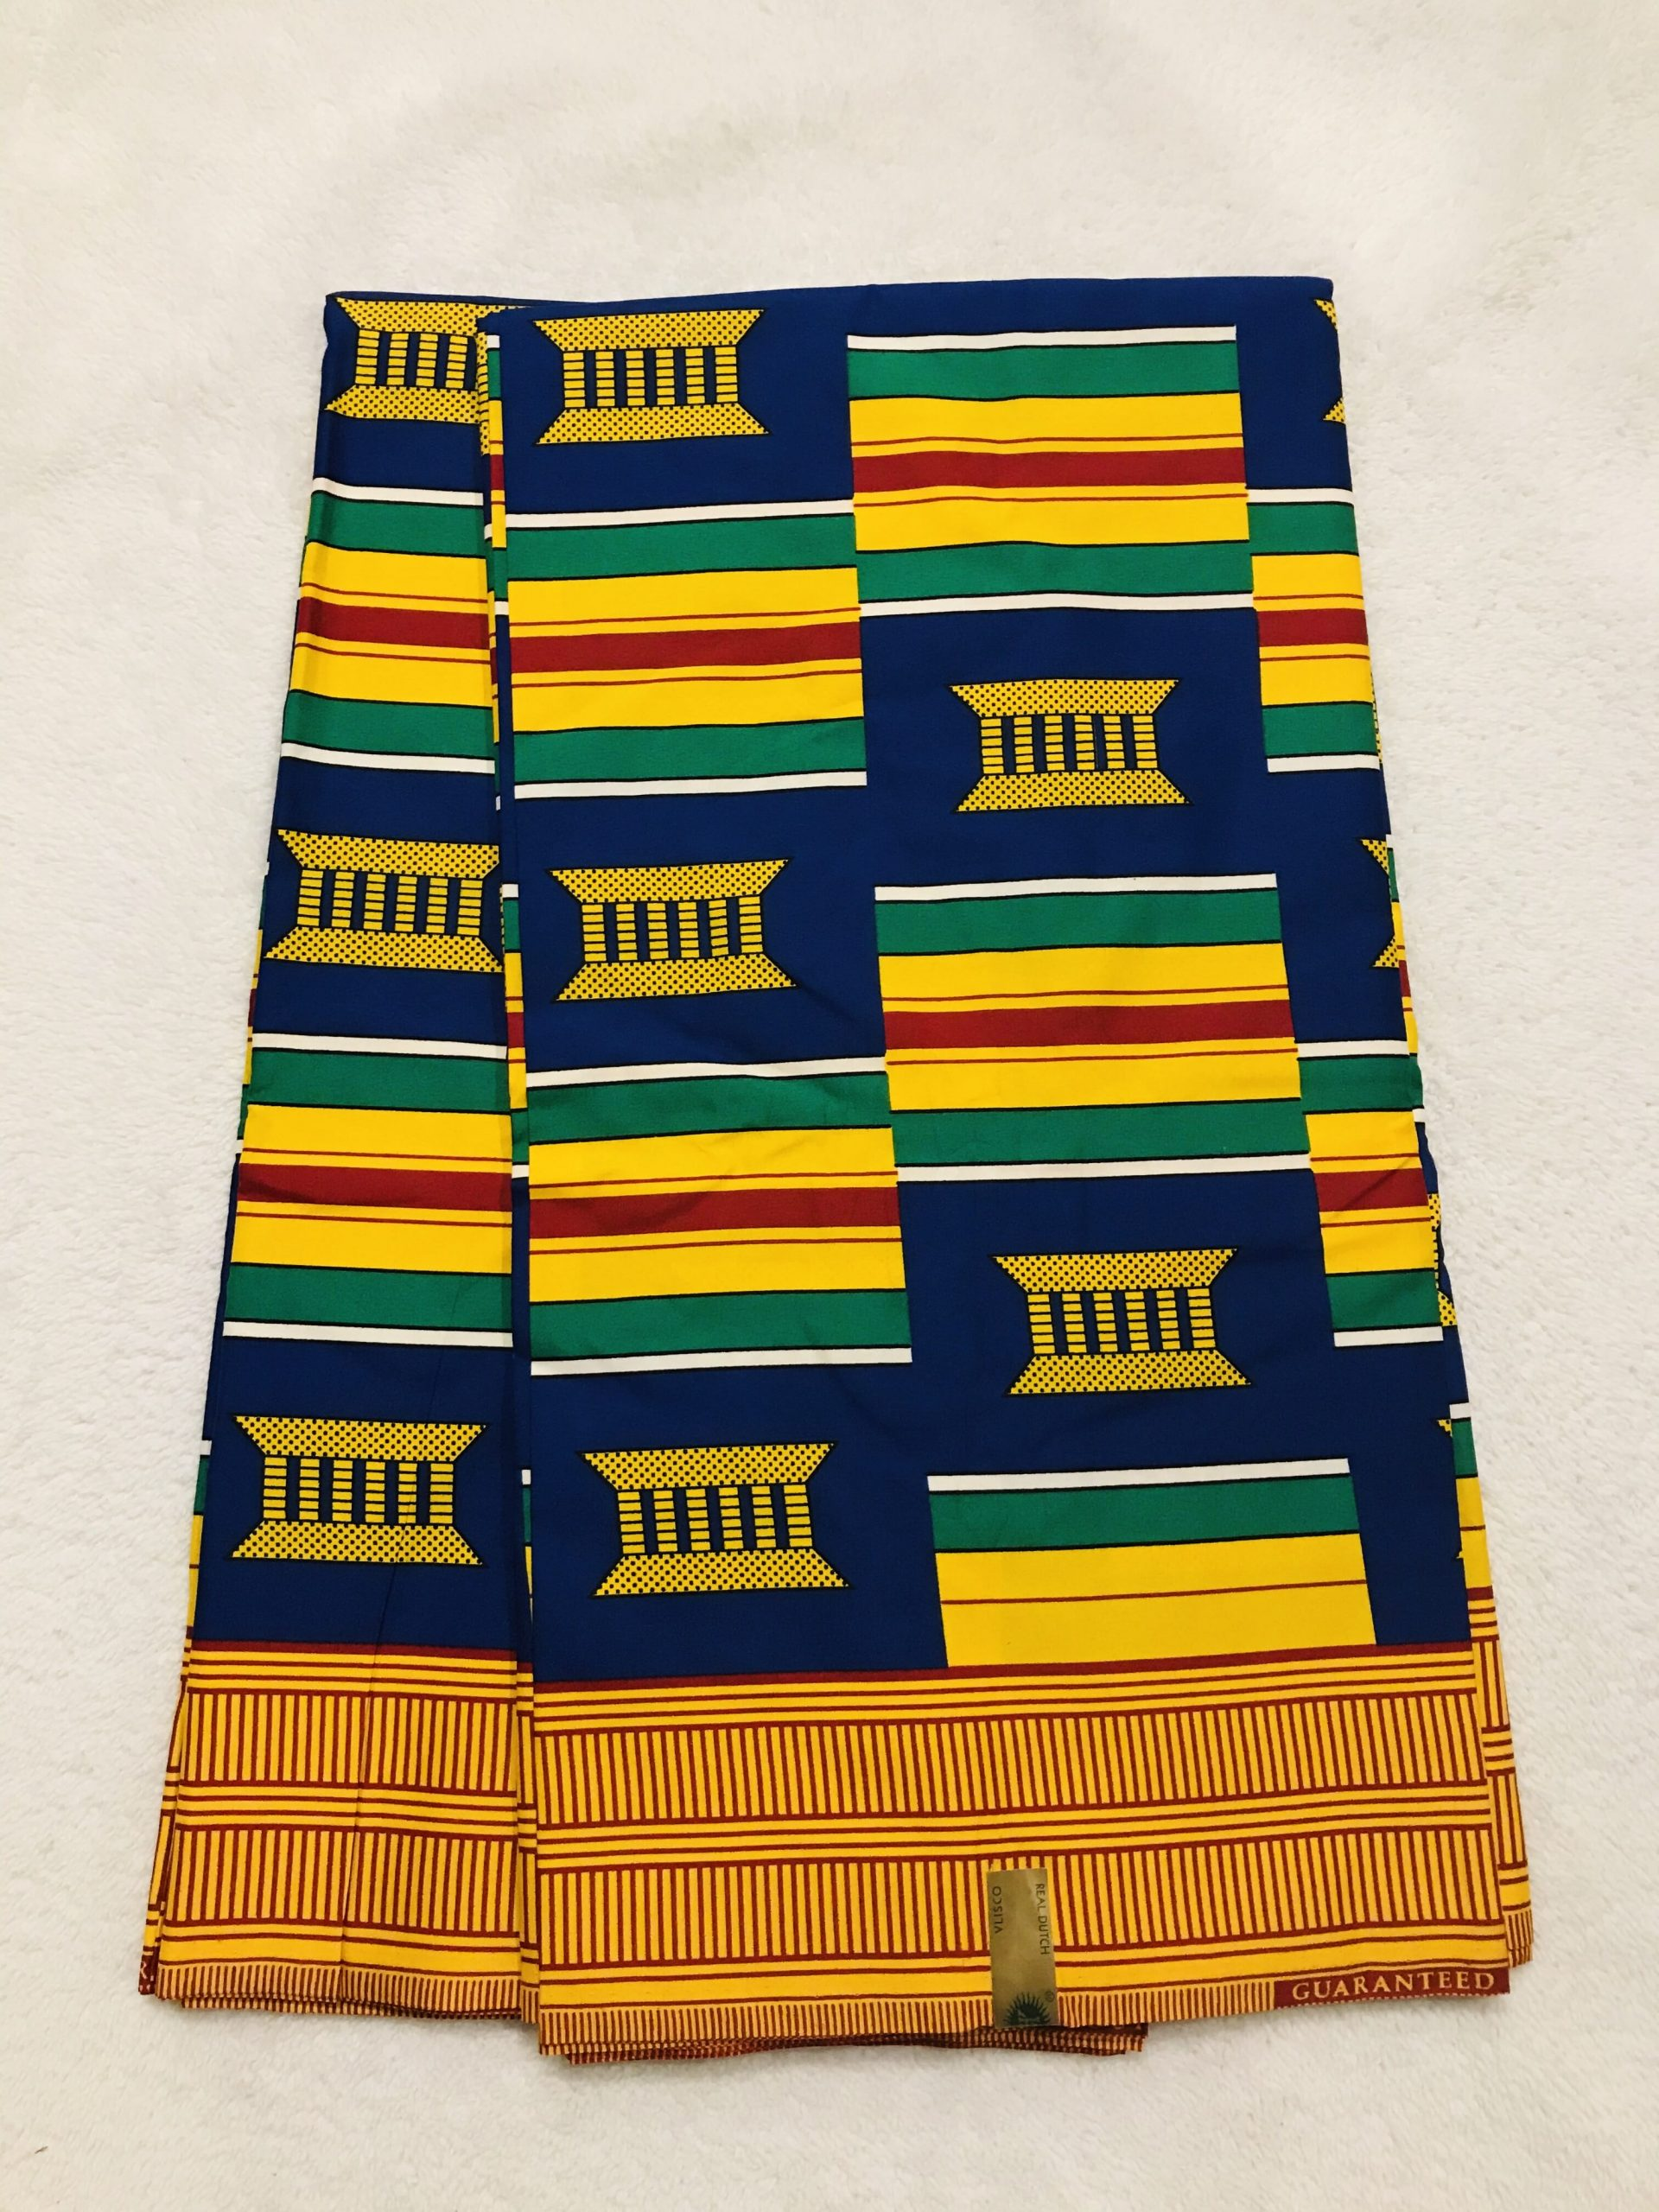 African Wax 6 yards Royal seats design fabric real African traditional print.  Ankanra 100% cotton material.